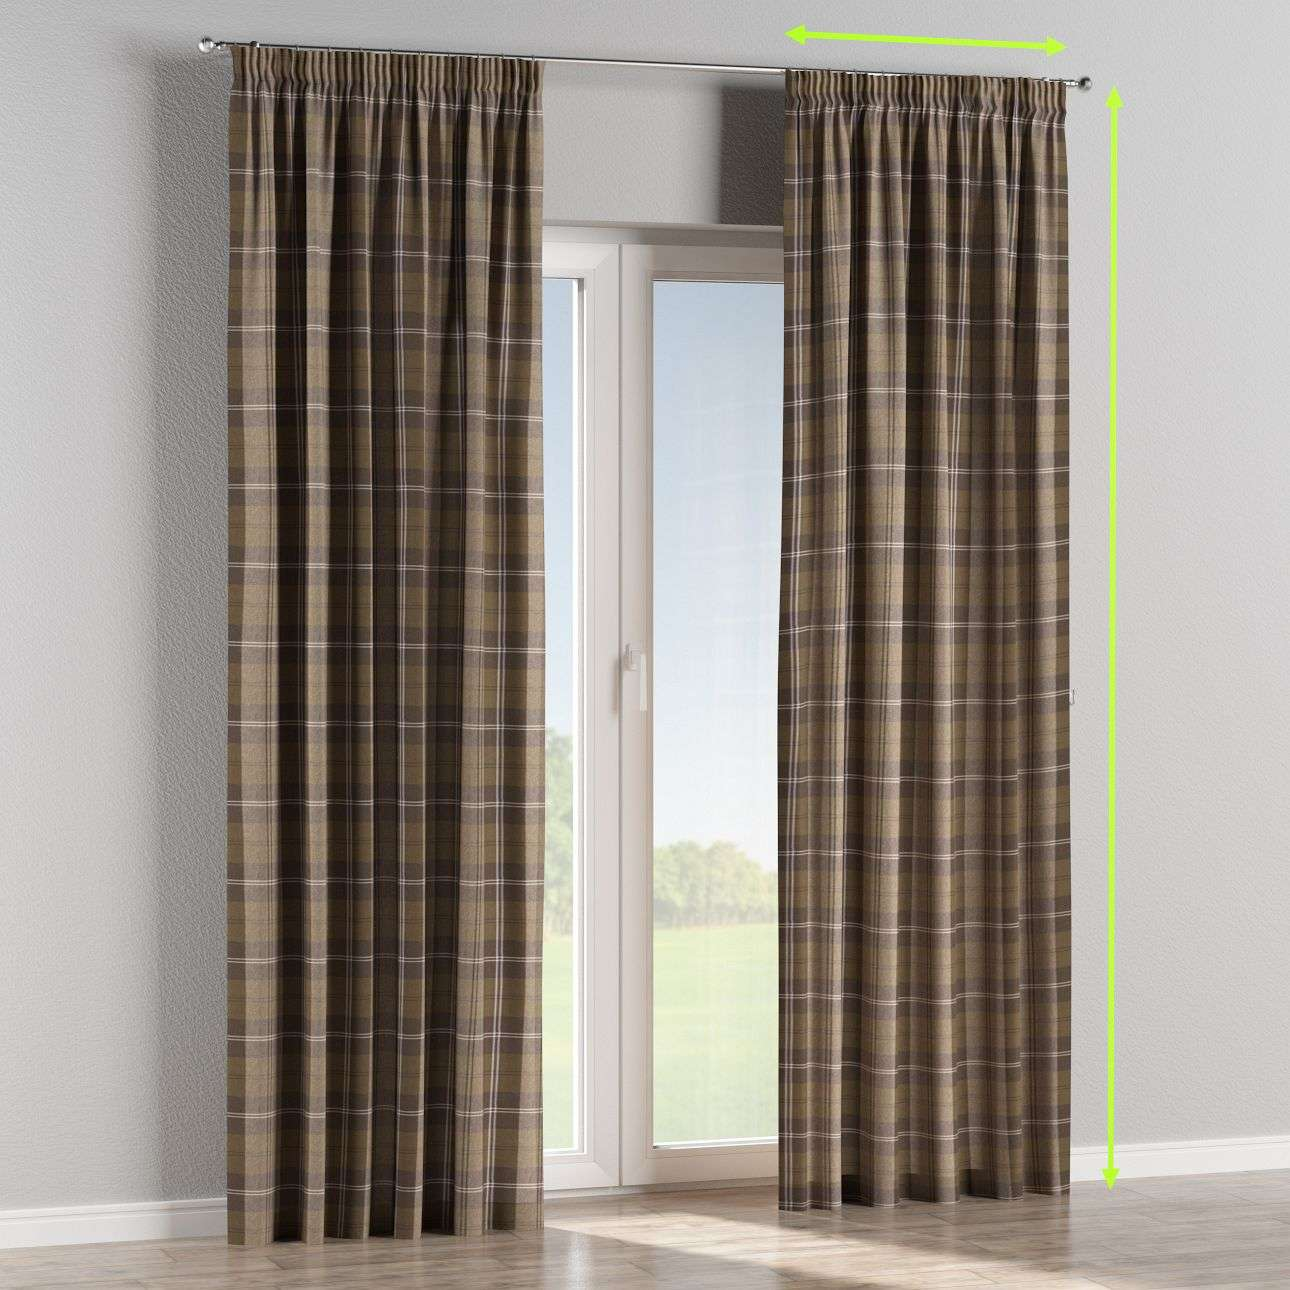 Pencil pleat lined curtains in collection Edinburgh, fabric: 115-76